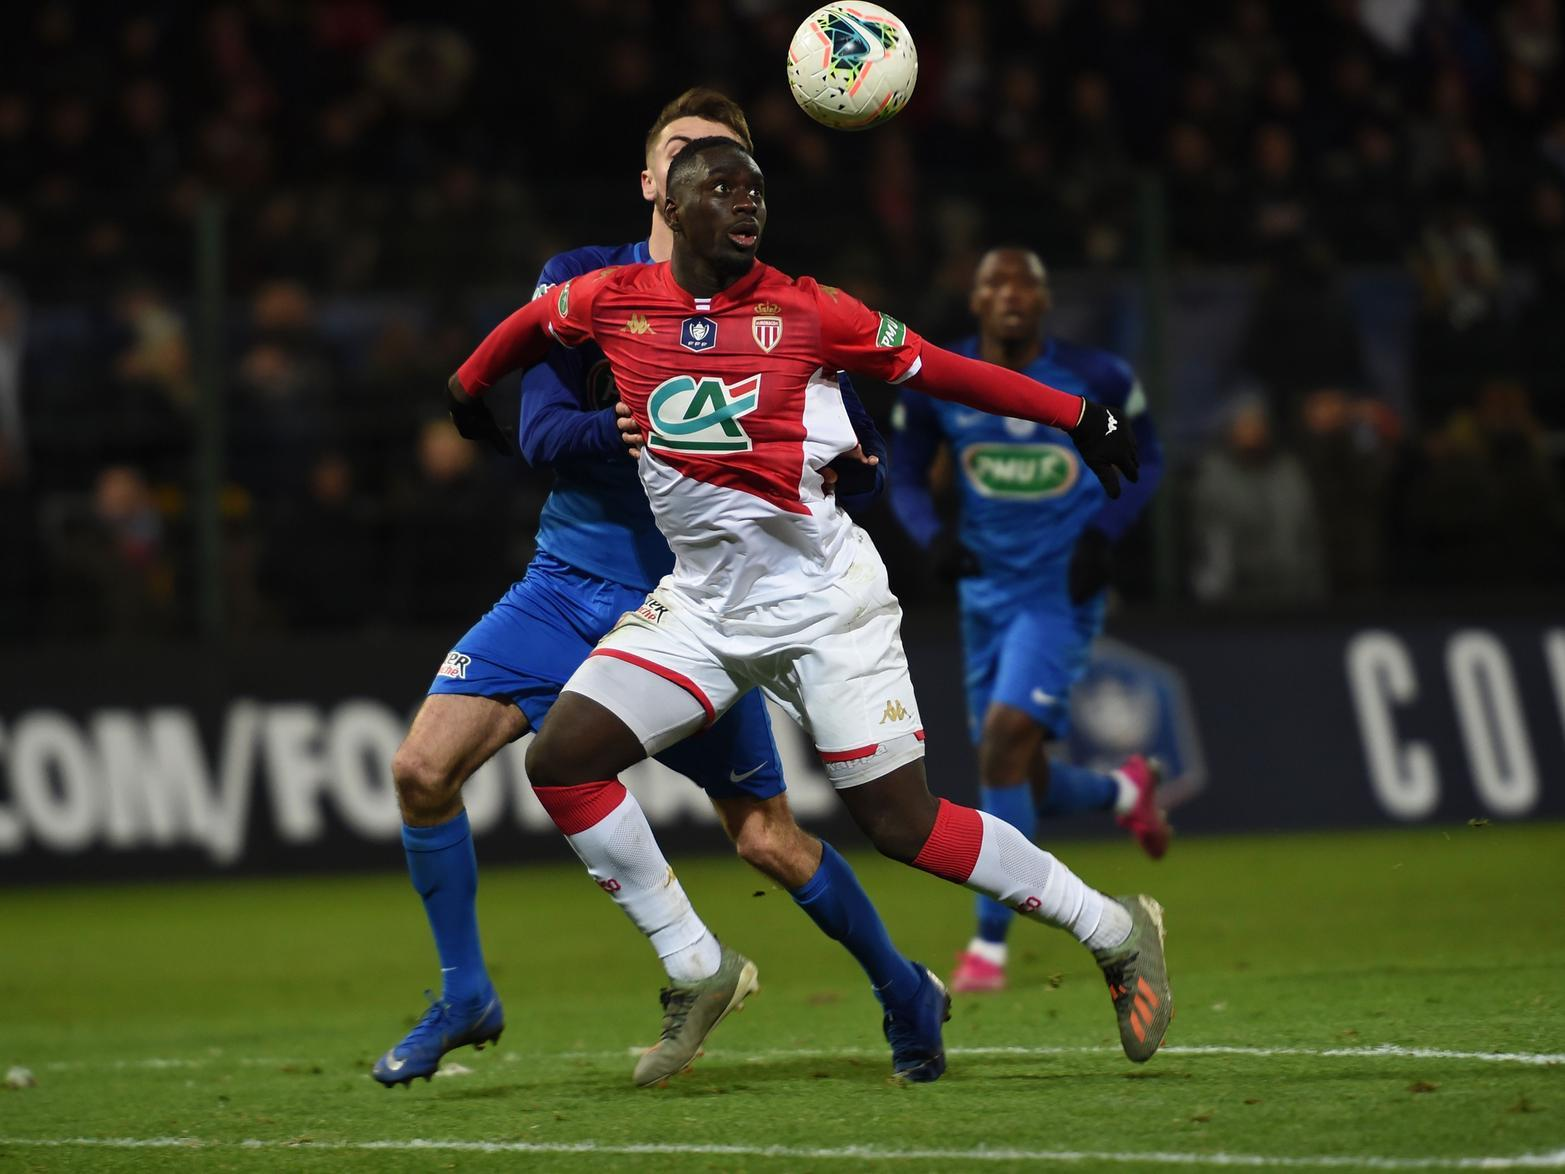 RB Leipzig striker Jean-Kevin Augustin keen on Leeds United switch say reports in France